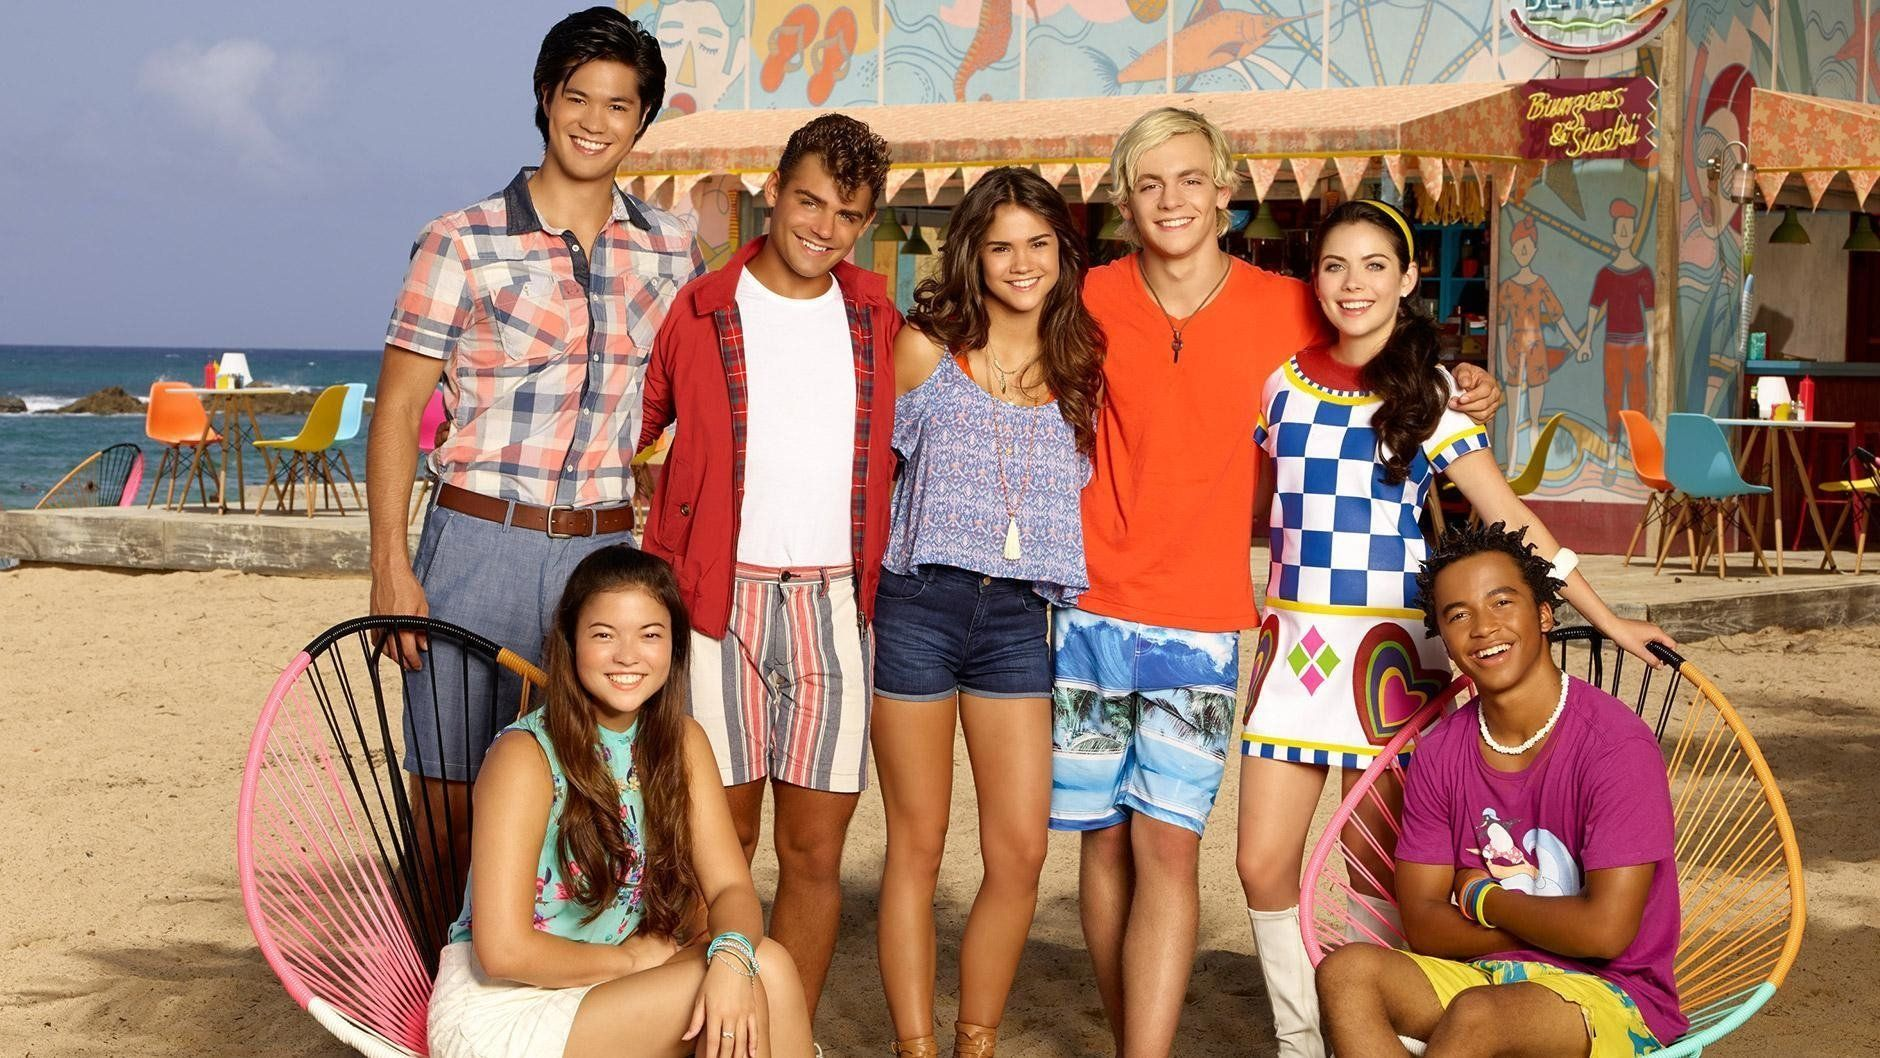 1 Teen Beach 2 HD Wallpapers | Backgrounds - Wallpaper Abyss